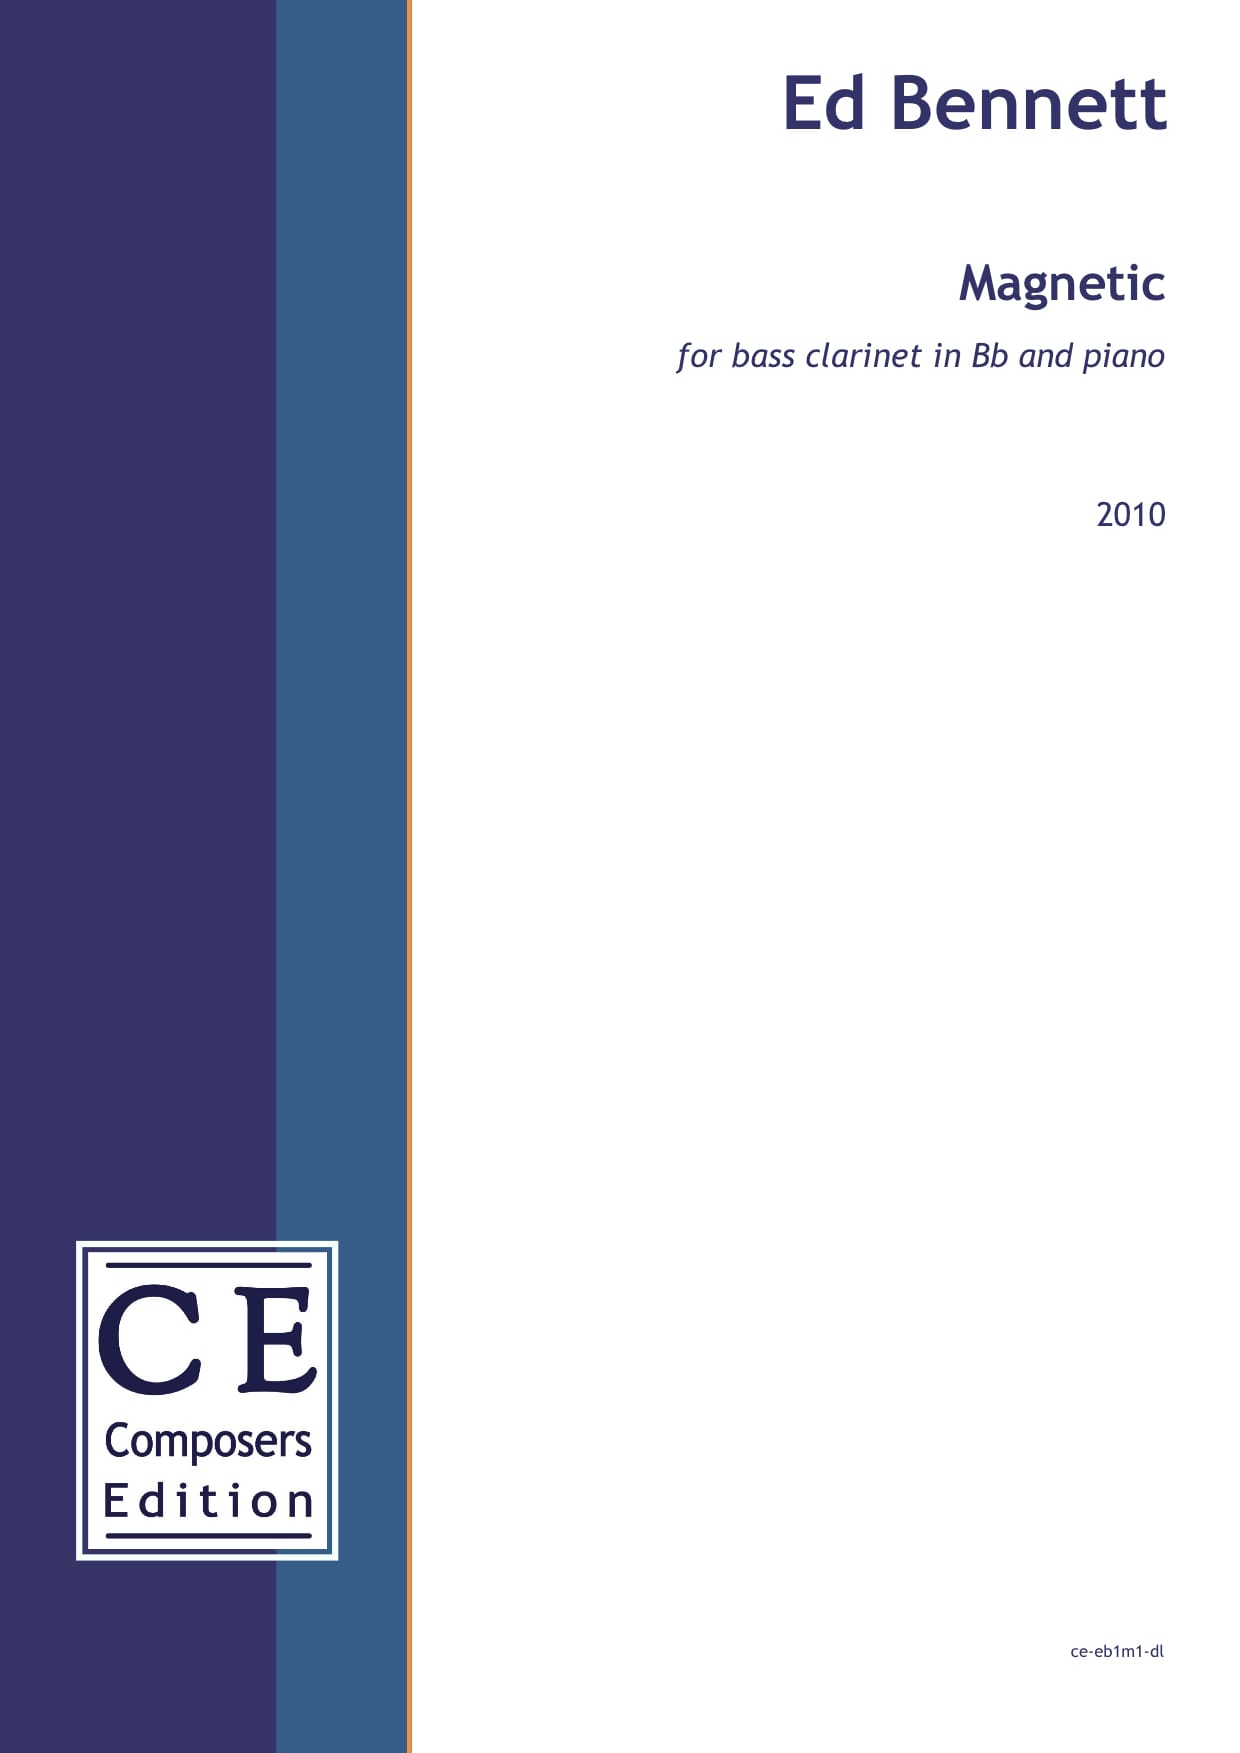 Ed Bennett: Magnetic for bass clarinet in Bb and piano